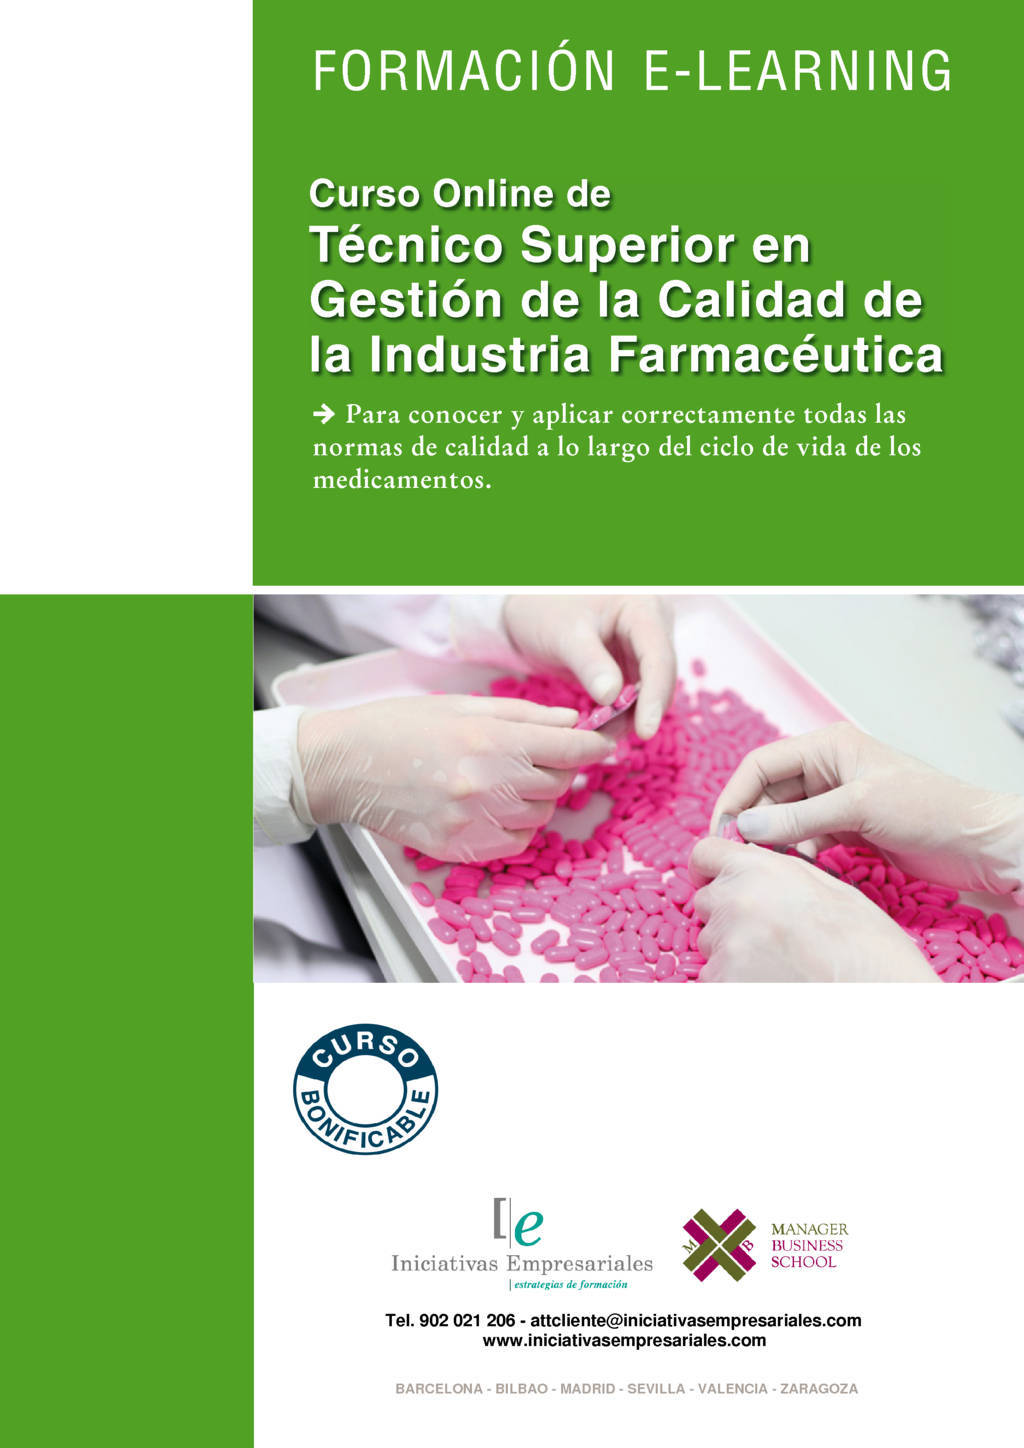 tecnico_superior_gestion_calidad_industria_farmaceutica.jpg